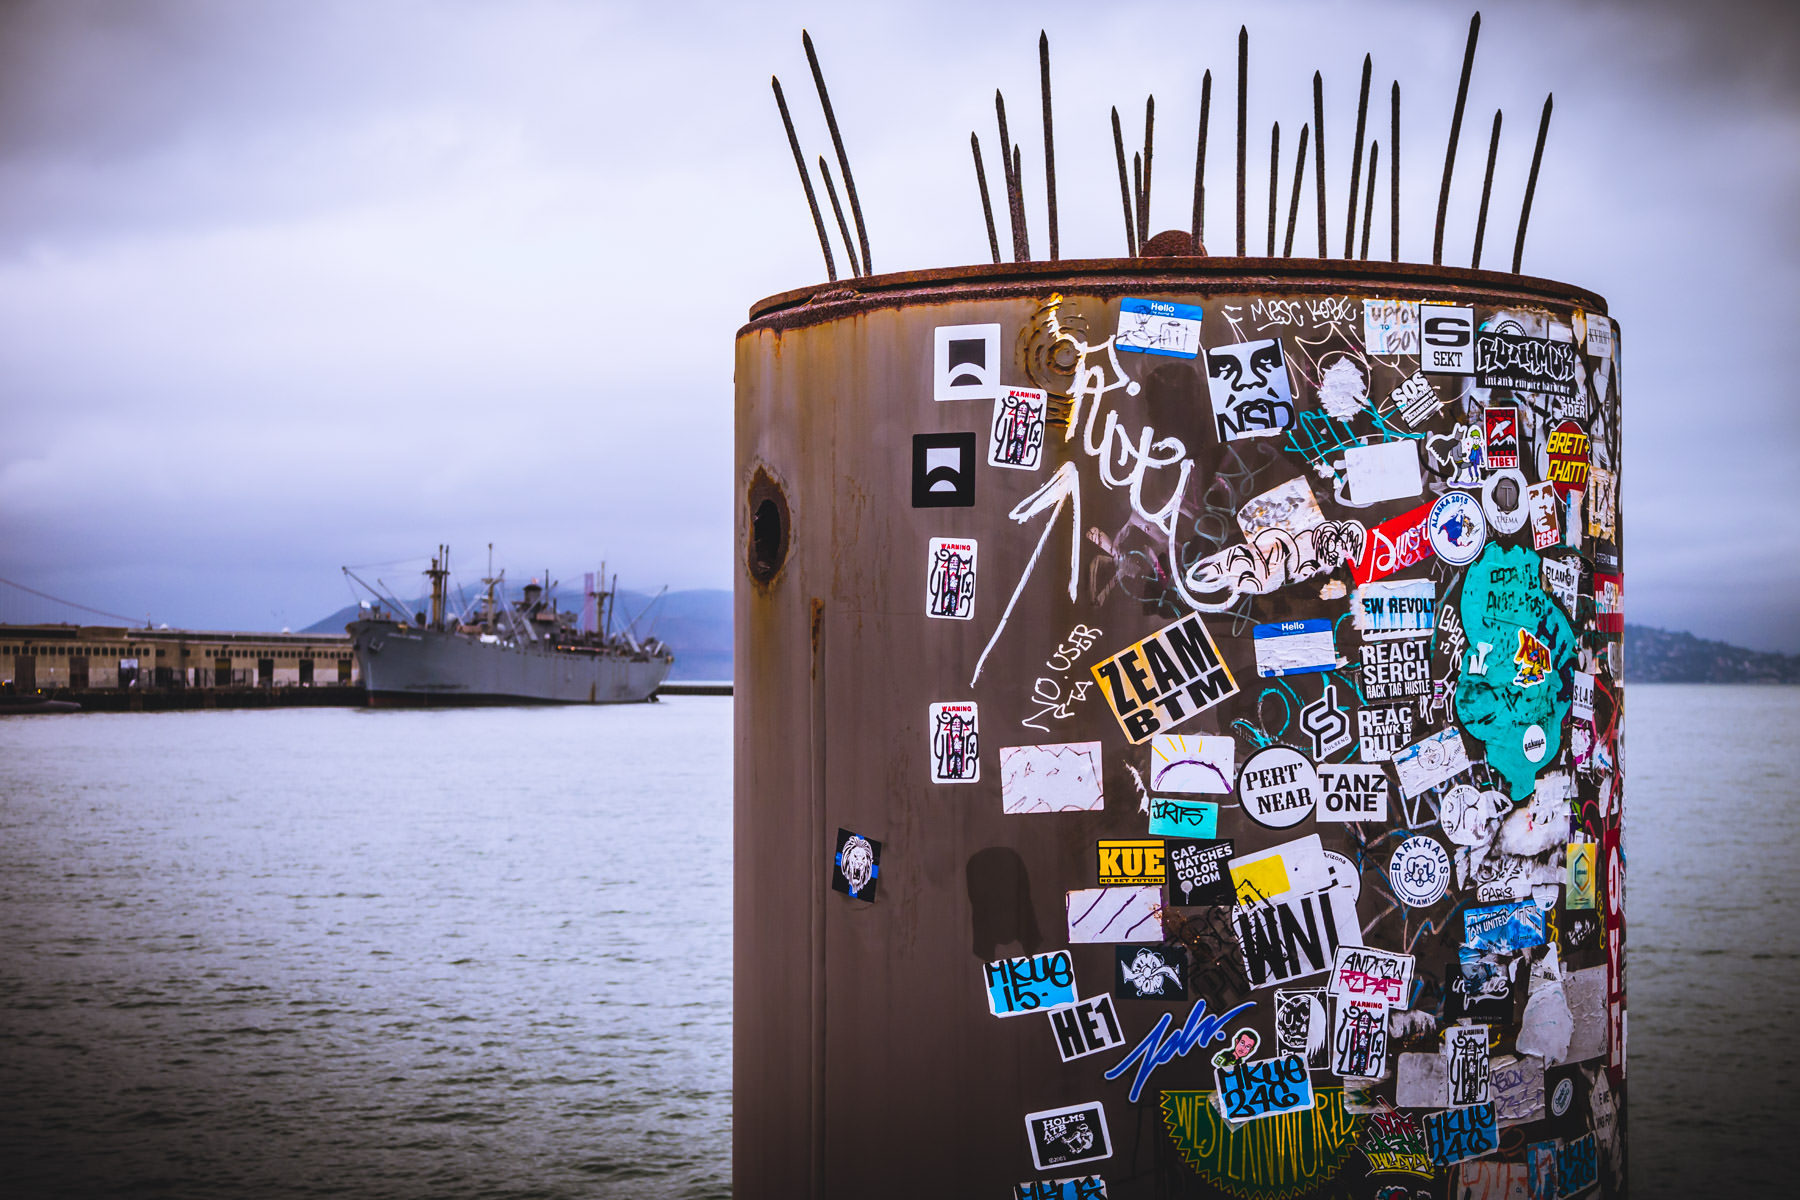 Decals cover a piece of dockside equipment on a cold, foggy morning at San Francisco's Fisherman's Wharf.